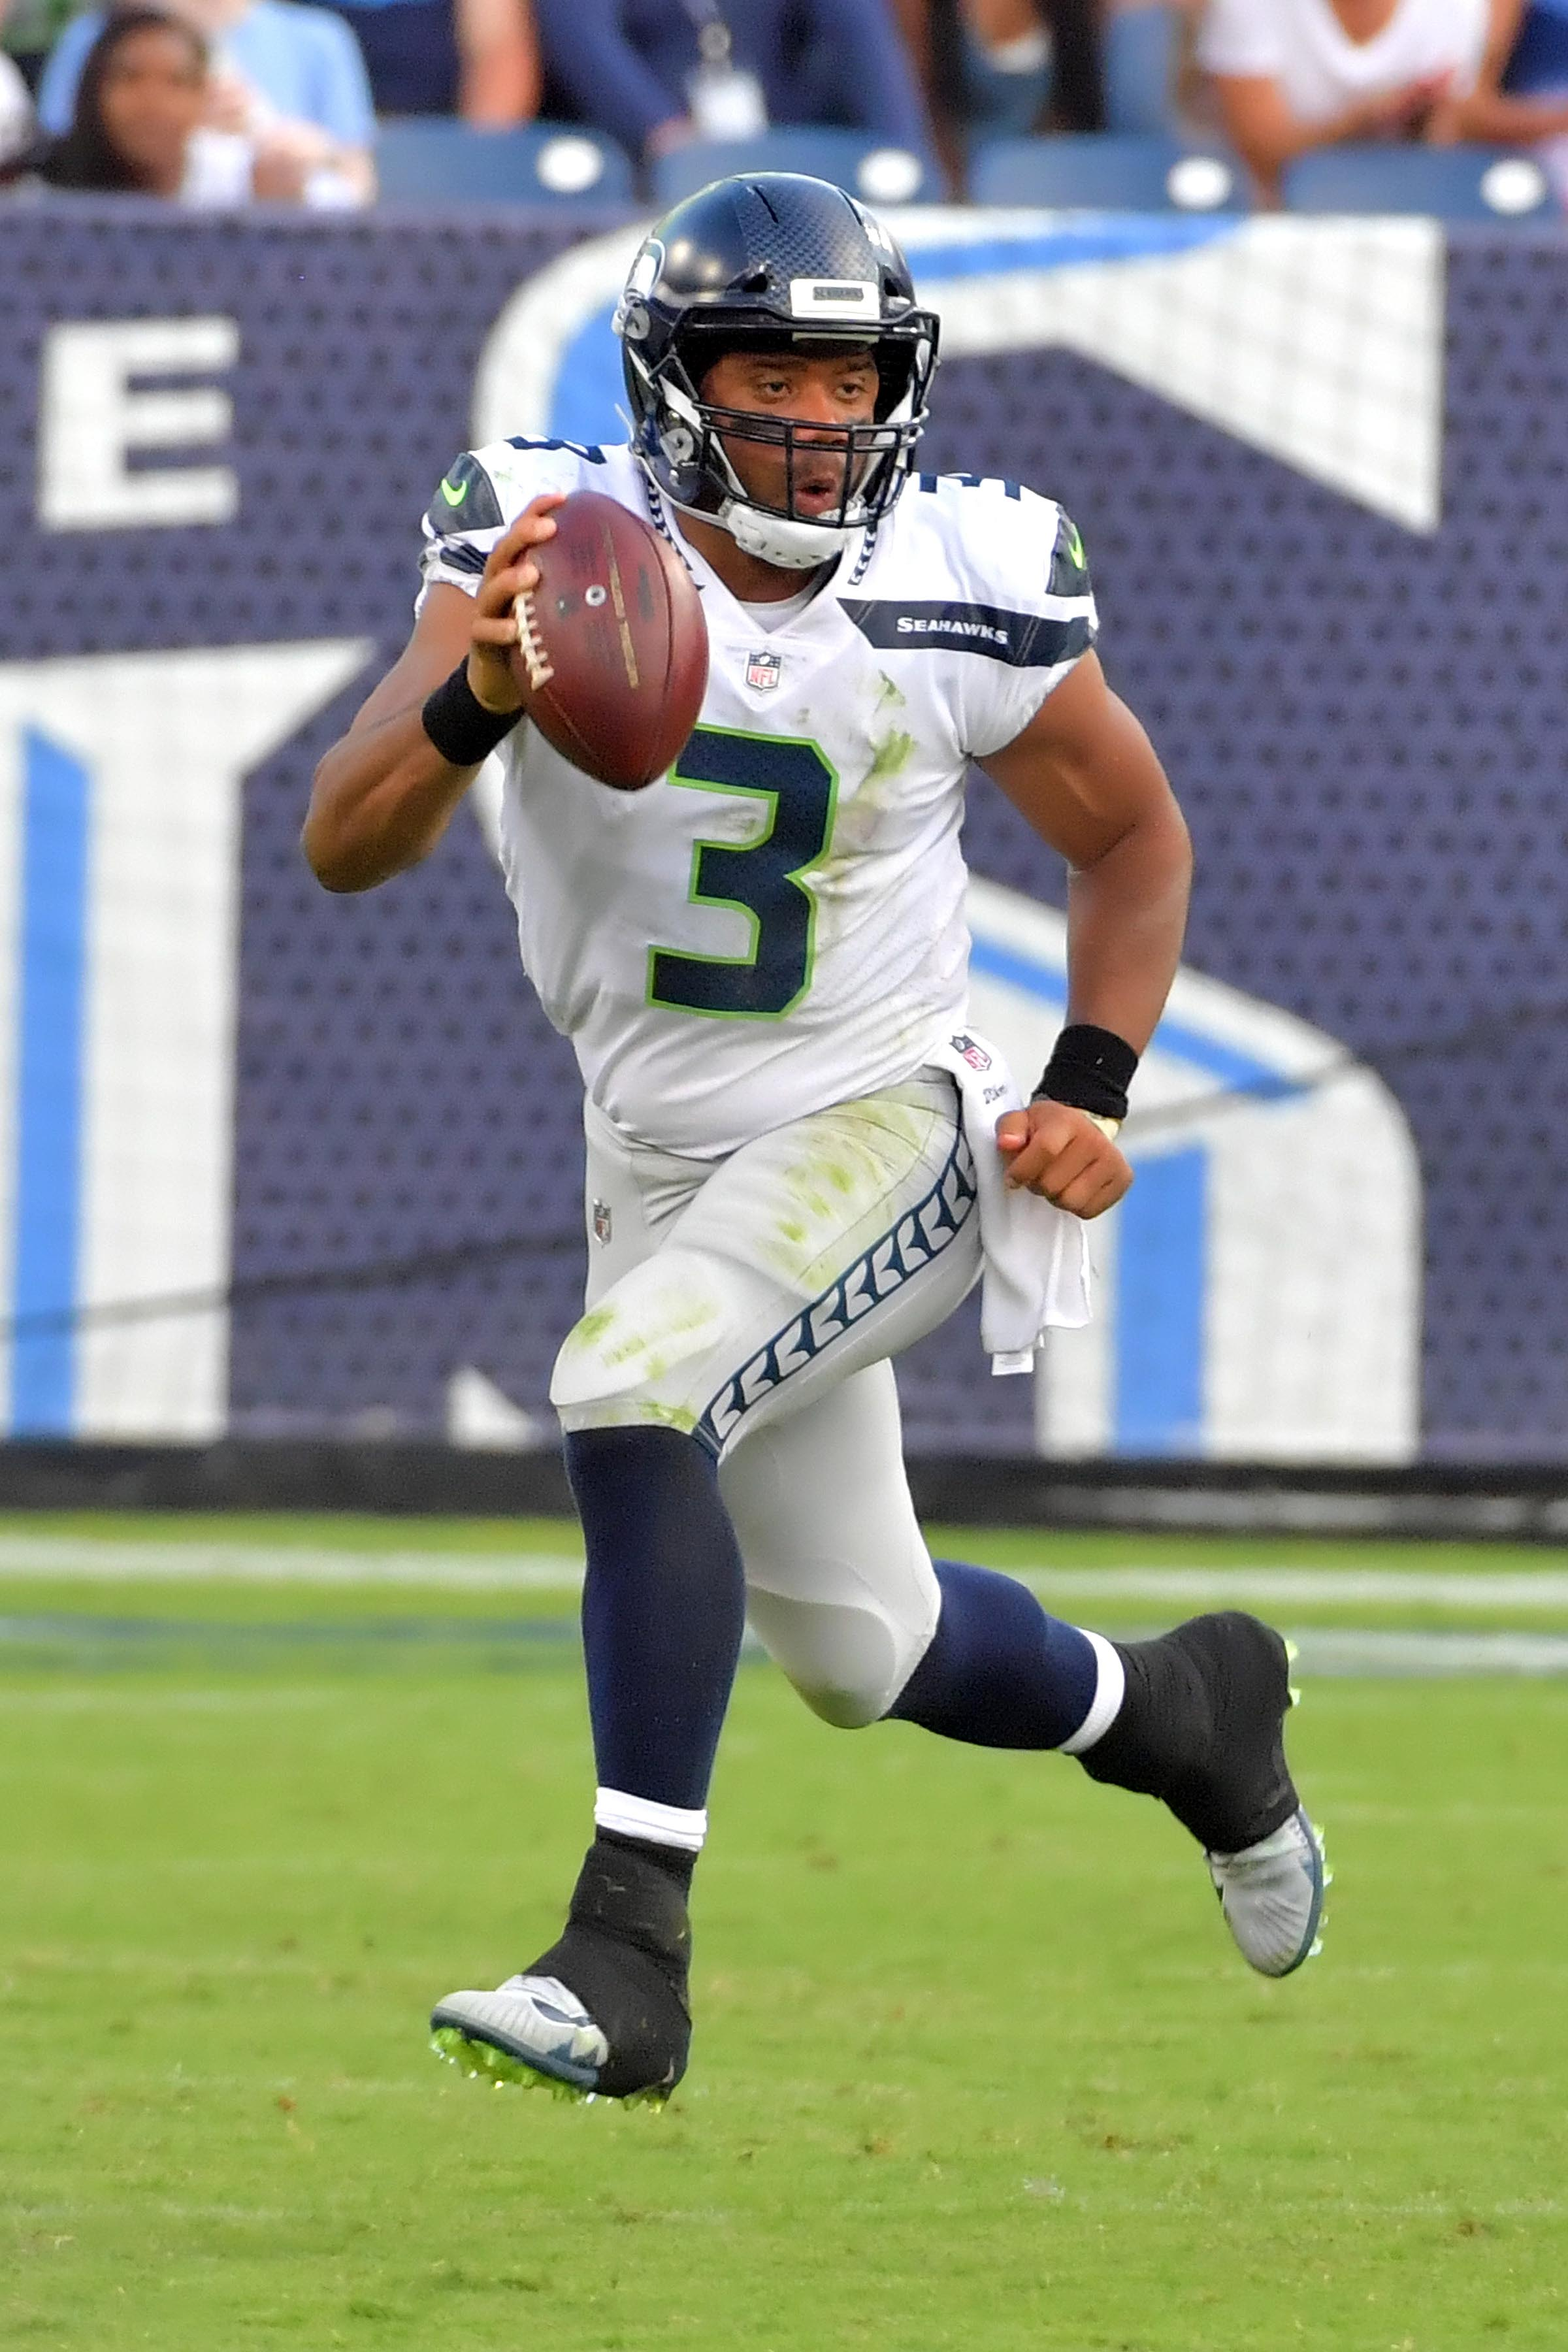 Colts vs. Seahawks odds 2017: Seattle a double-digit betting favorite for Sunday night